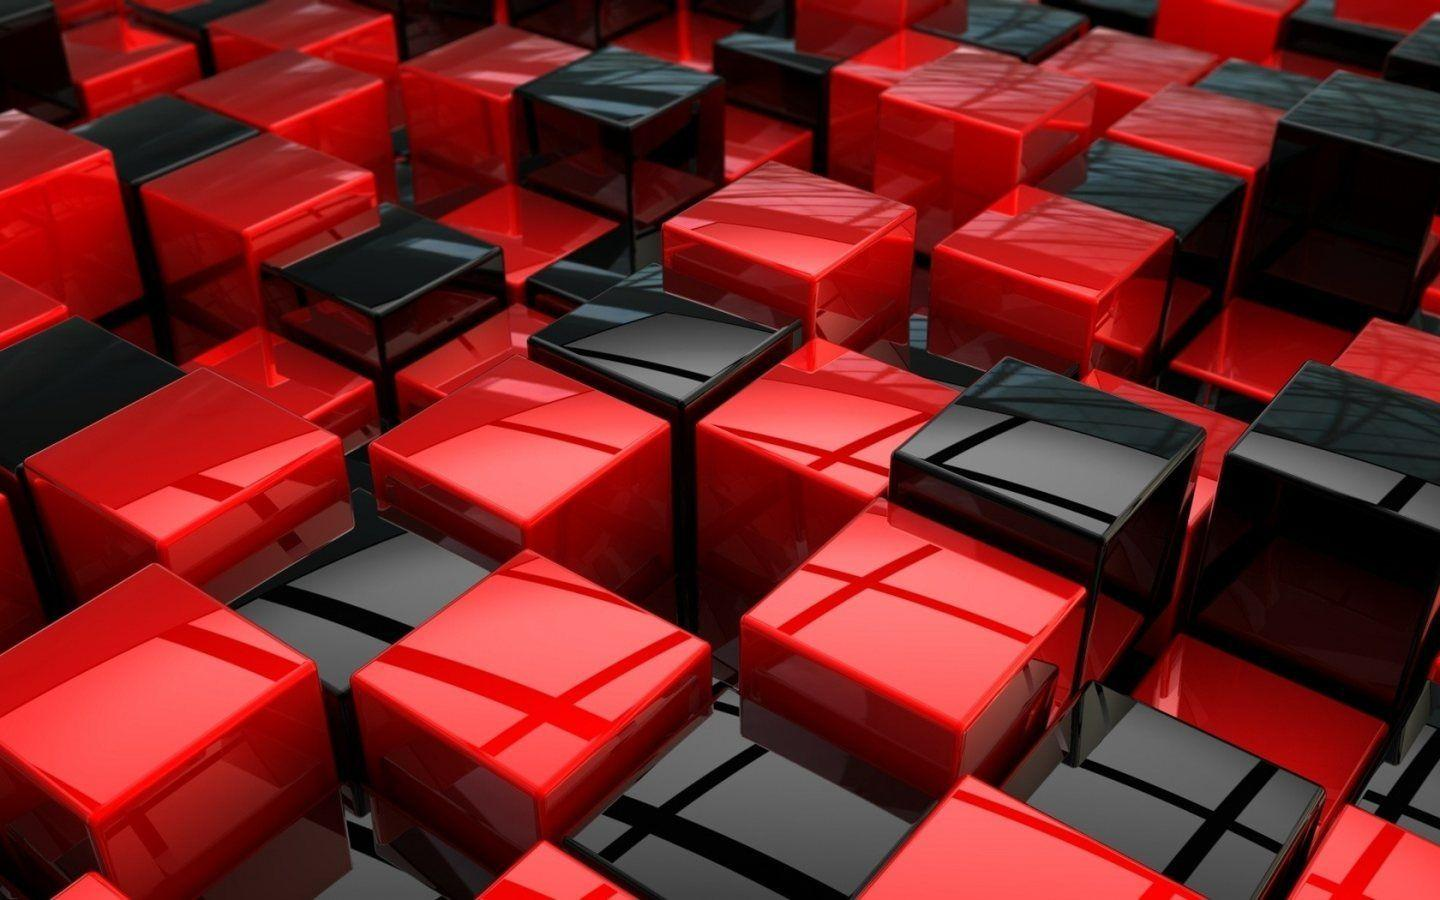 Hd wallpaper red and black - Red And Black Wallpaper Hd 21421 Wallpaper Res 1440x900 Room